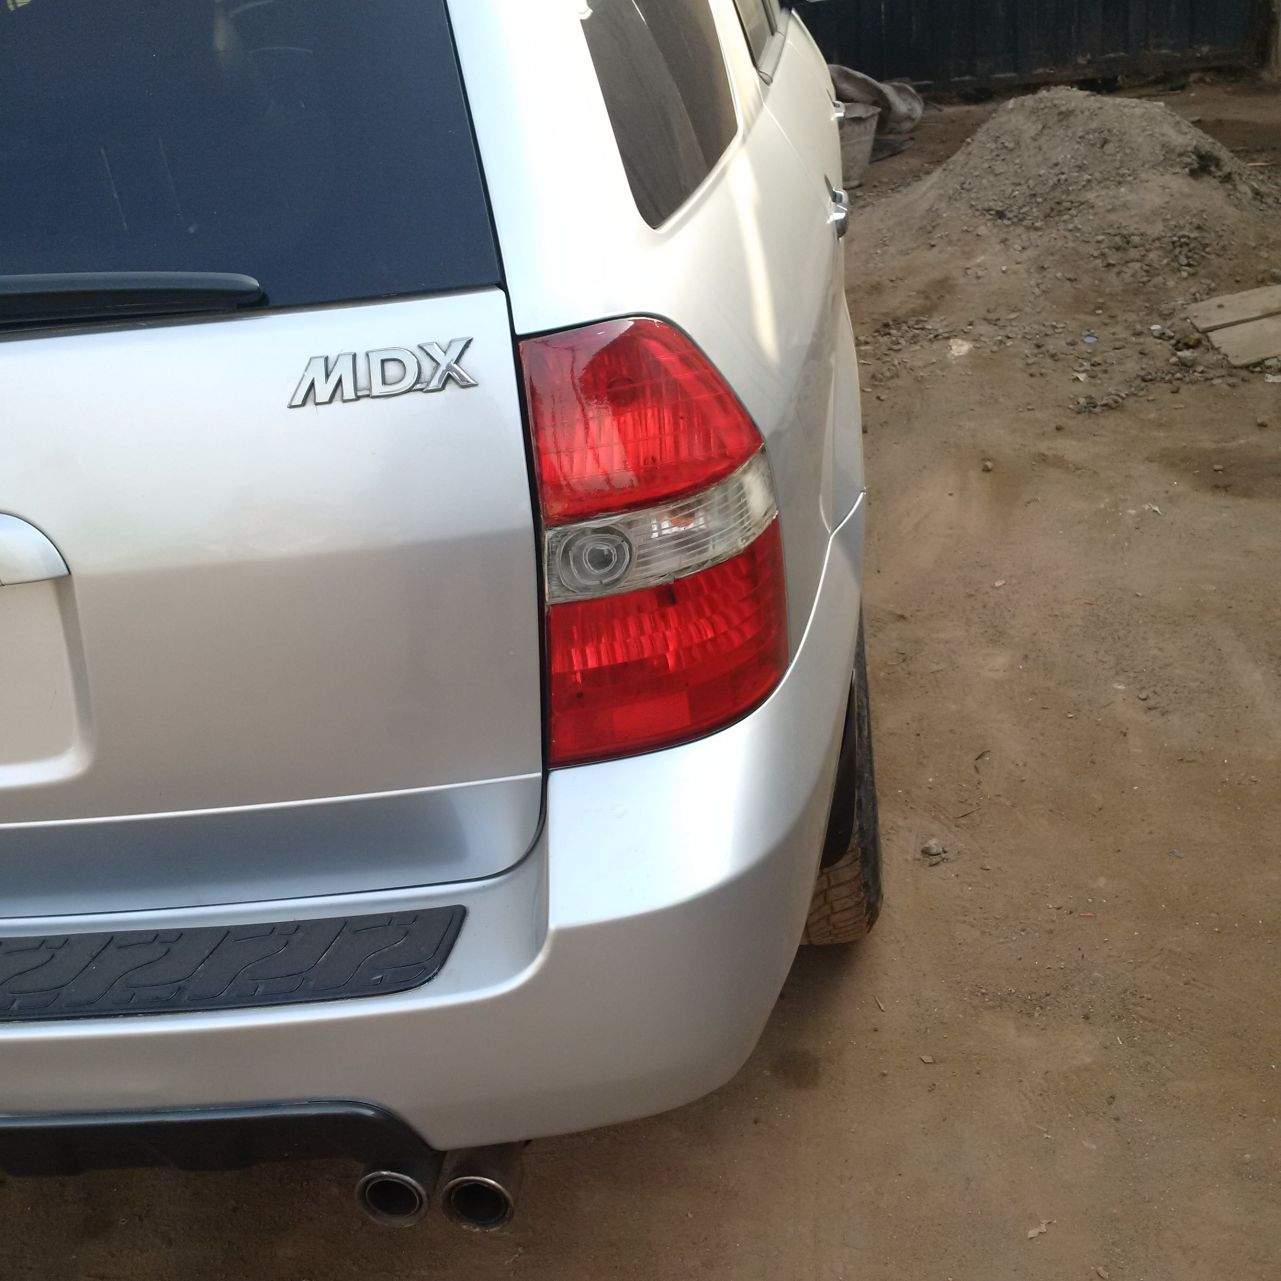 2004 Acura Mdx For Sale: Registered 2002 Acura Mdx For Sale